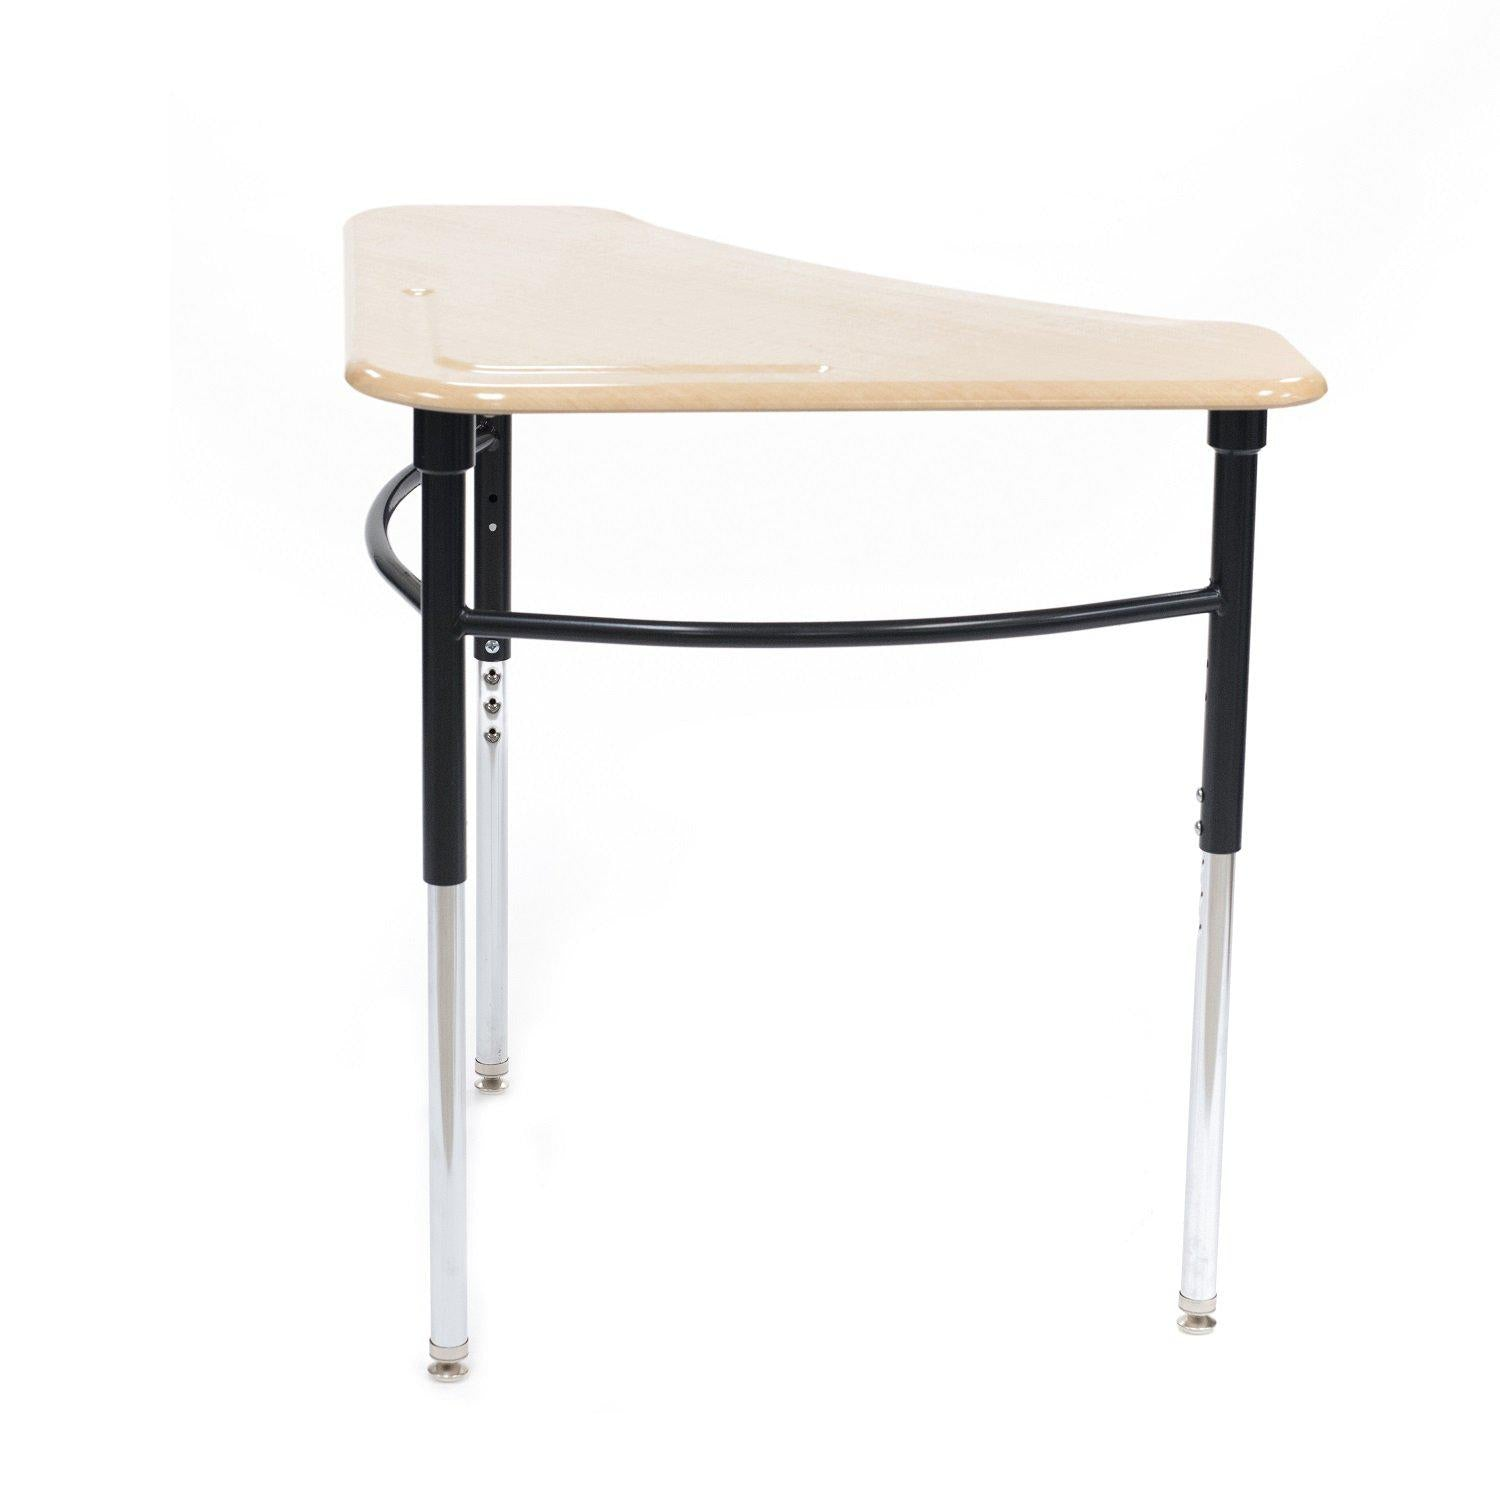 Kaleidoscope Collaborative Learning  Adjustable Height Triangle Desk with Solid Plastic Top